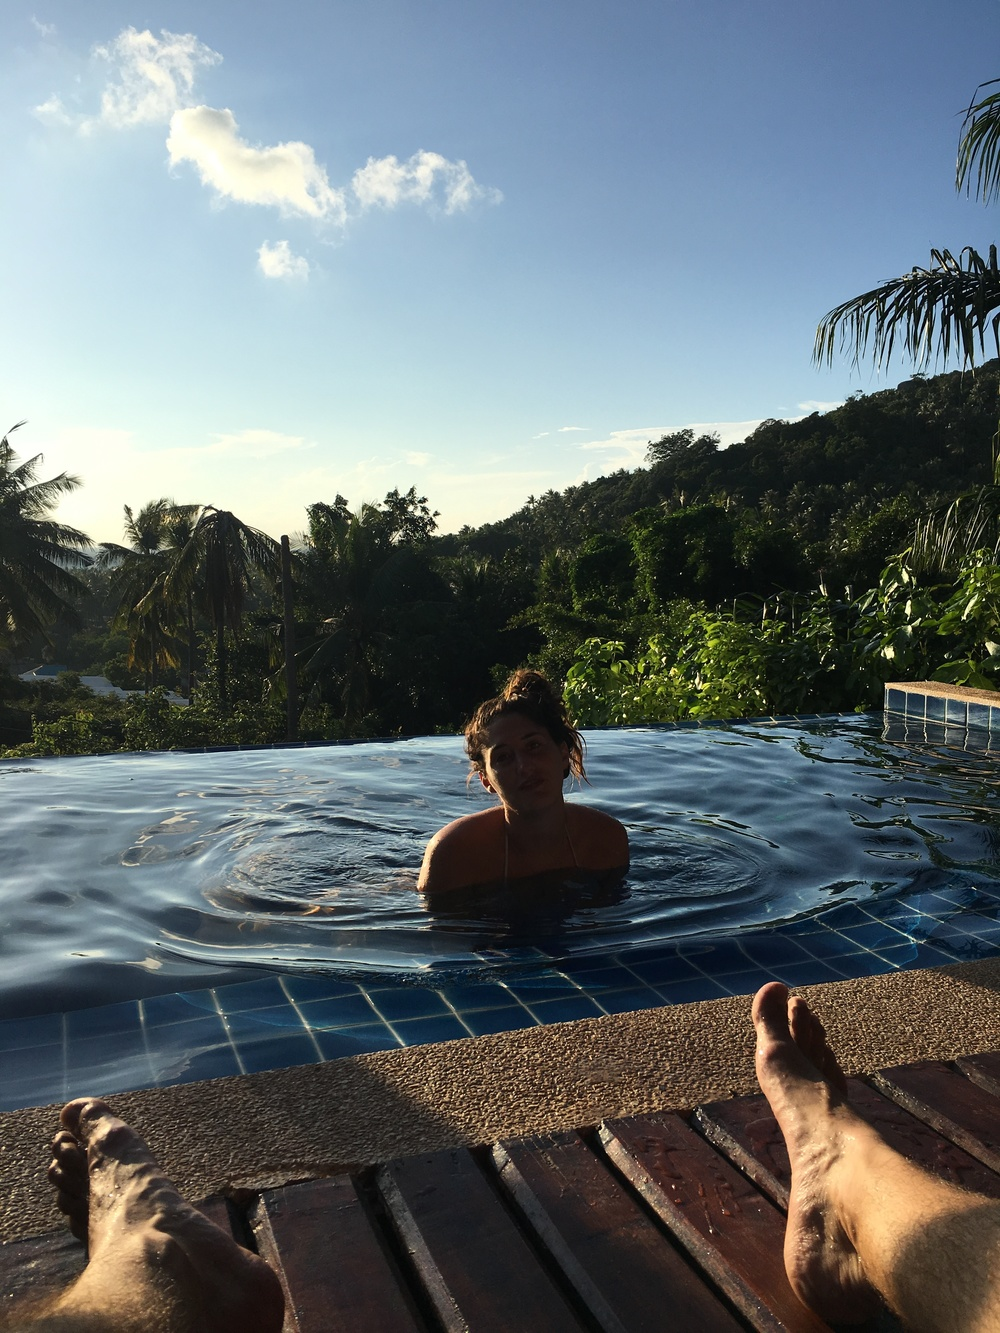 More plunge pooling